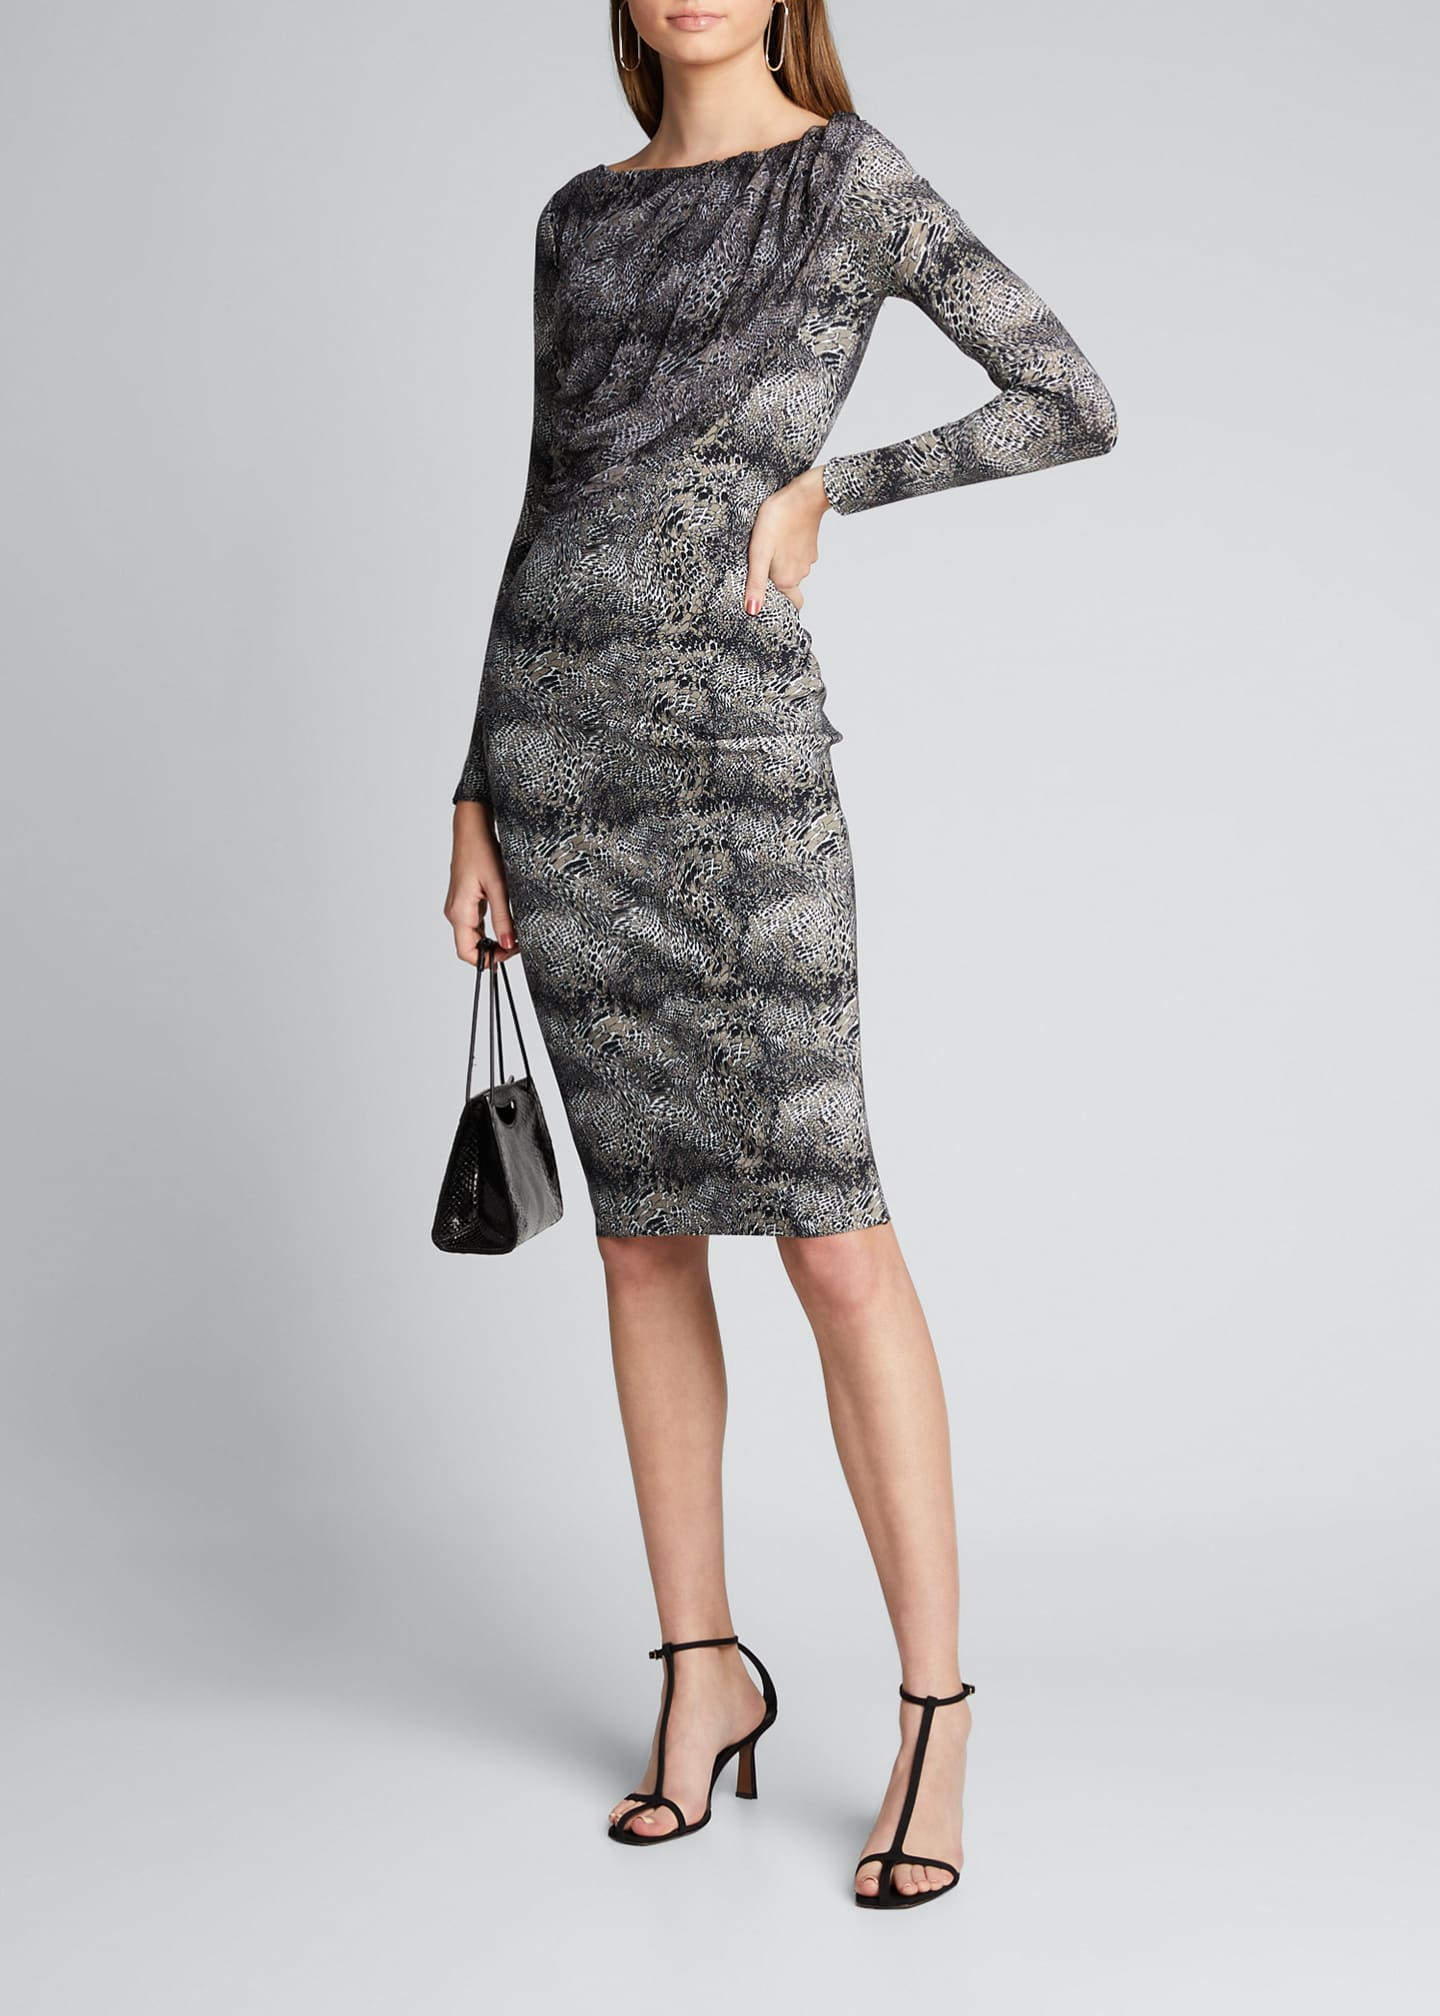 Chiara Boni La Petite Robe Snake-Print Long-Sleeve Dress